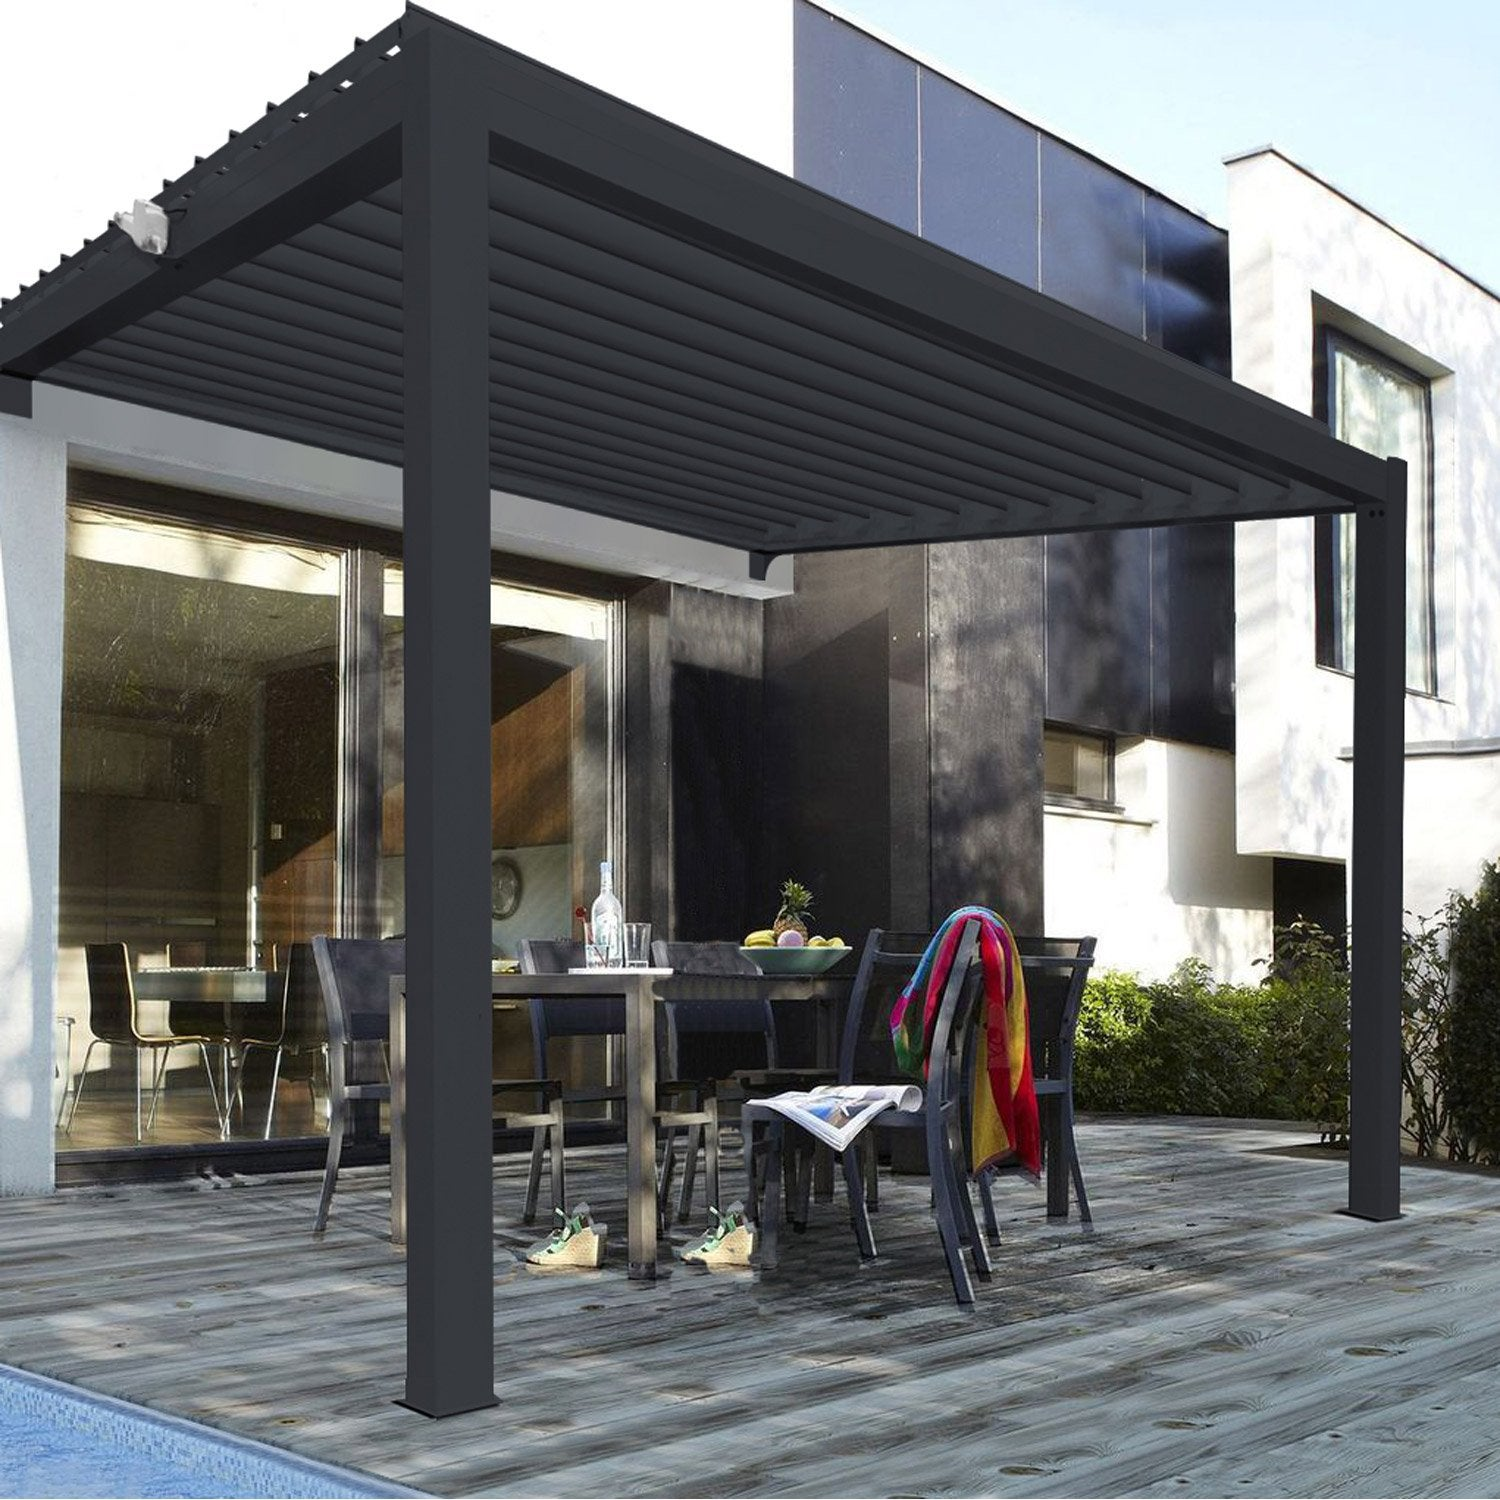 pergola adosse fer forg castorama tonnelle adossee en fer forge m carmen with pergola adosse. Black Bedroom Furniture Sets. Home Design Ideas